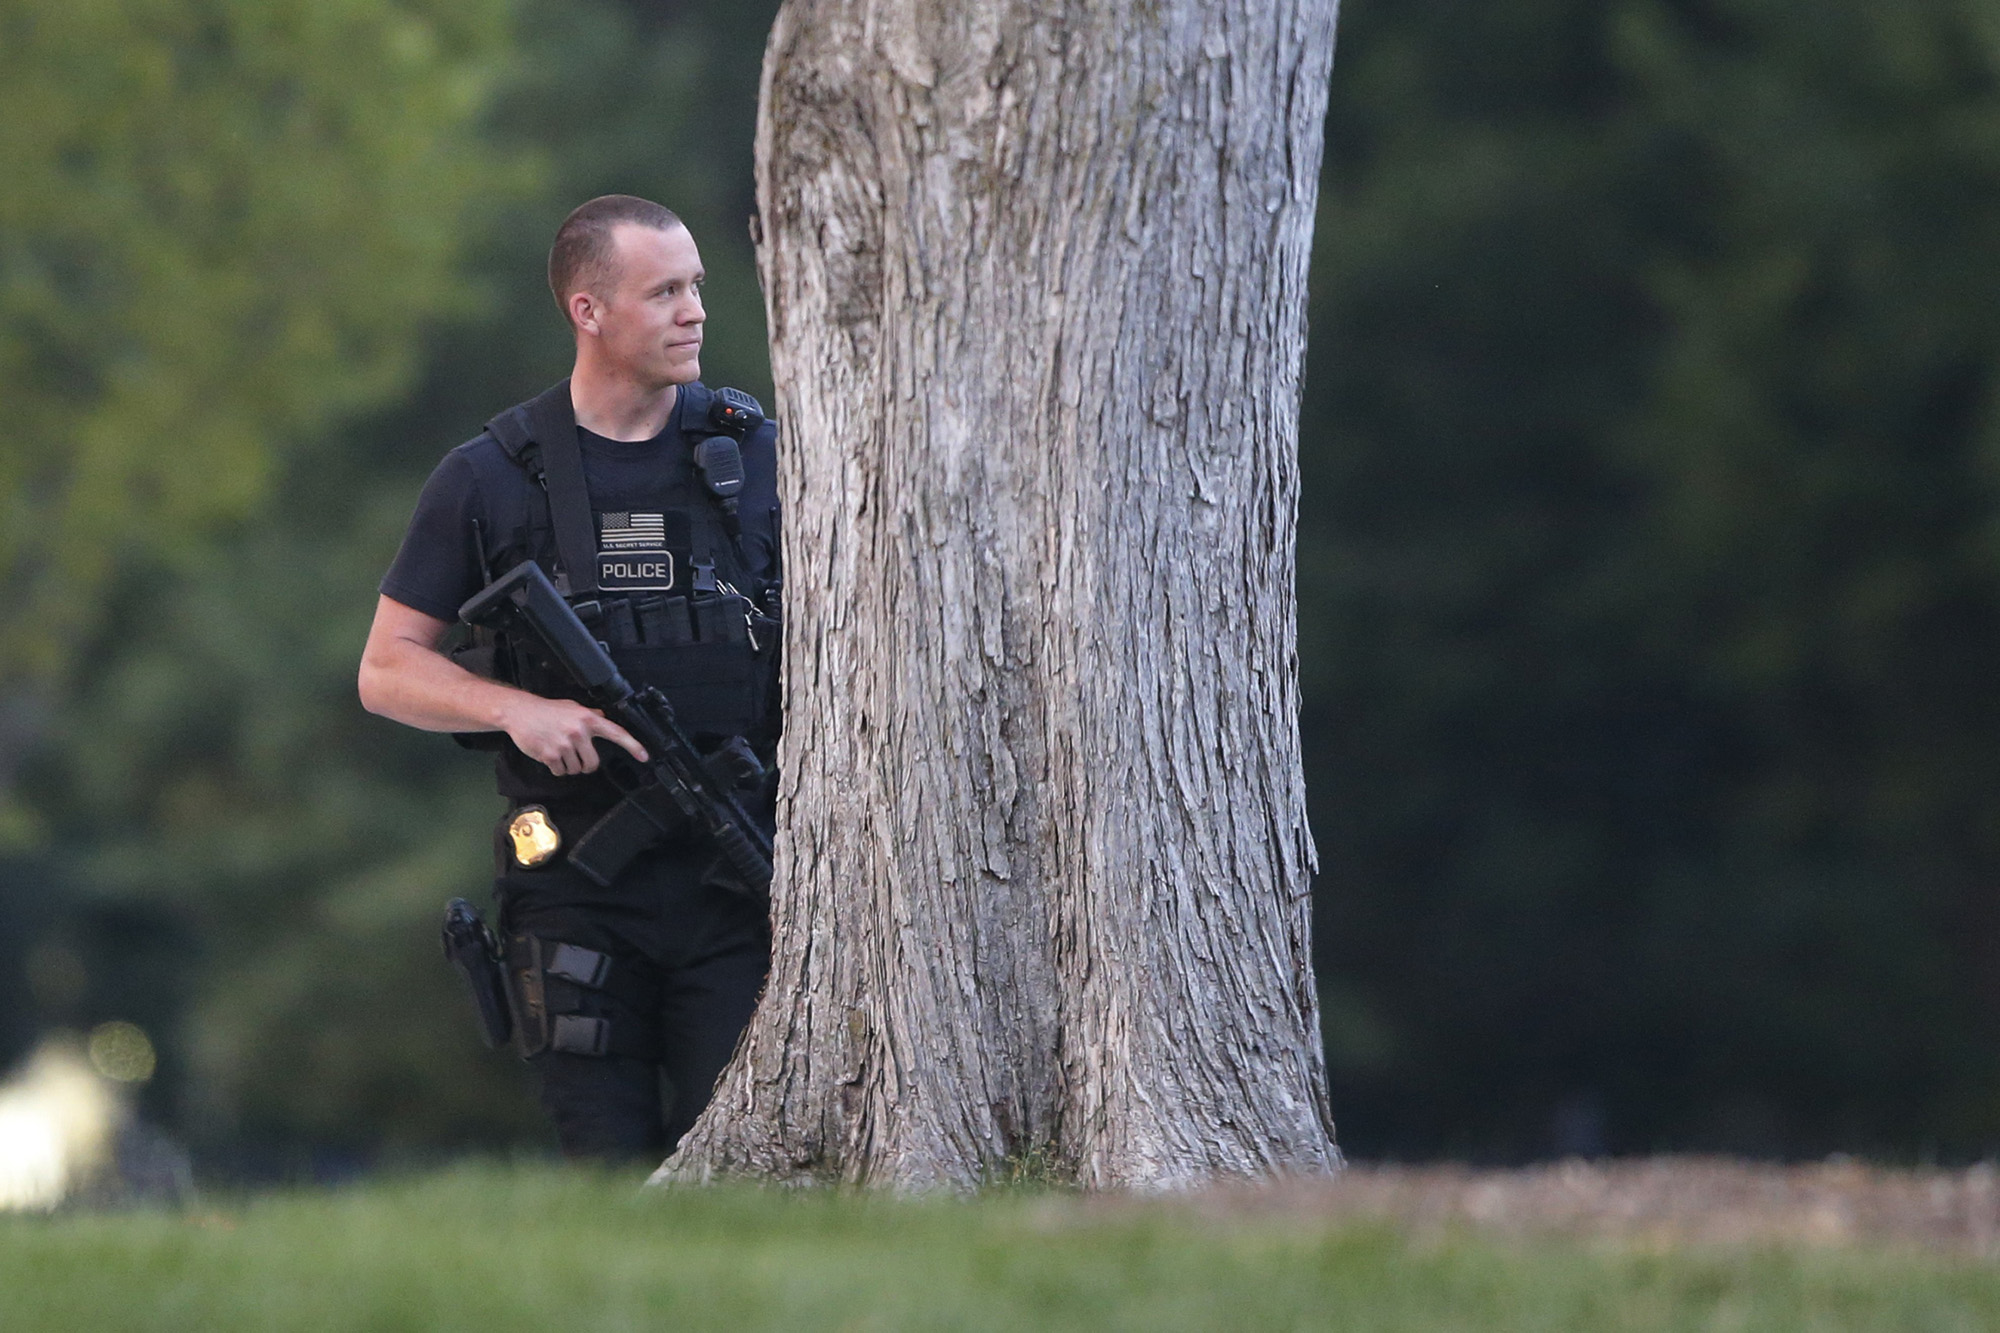 A member of the U.S. Secret Service Emergency Response Team stands watch on the North Lawn at the White House in Washington, Aug. 7, 2014.